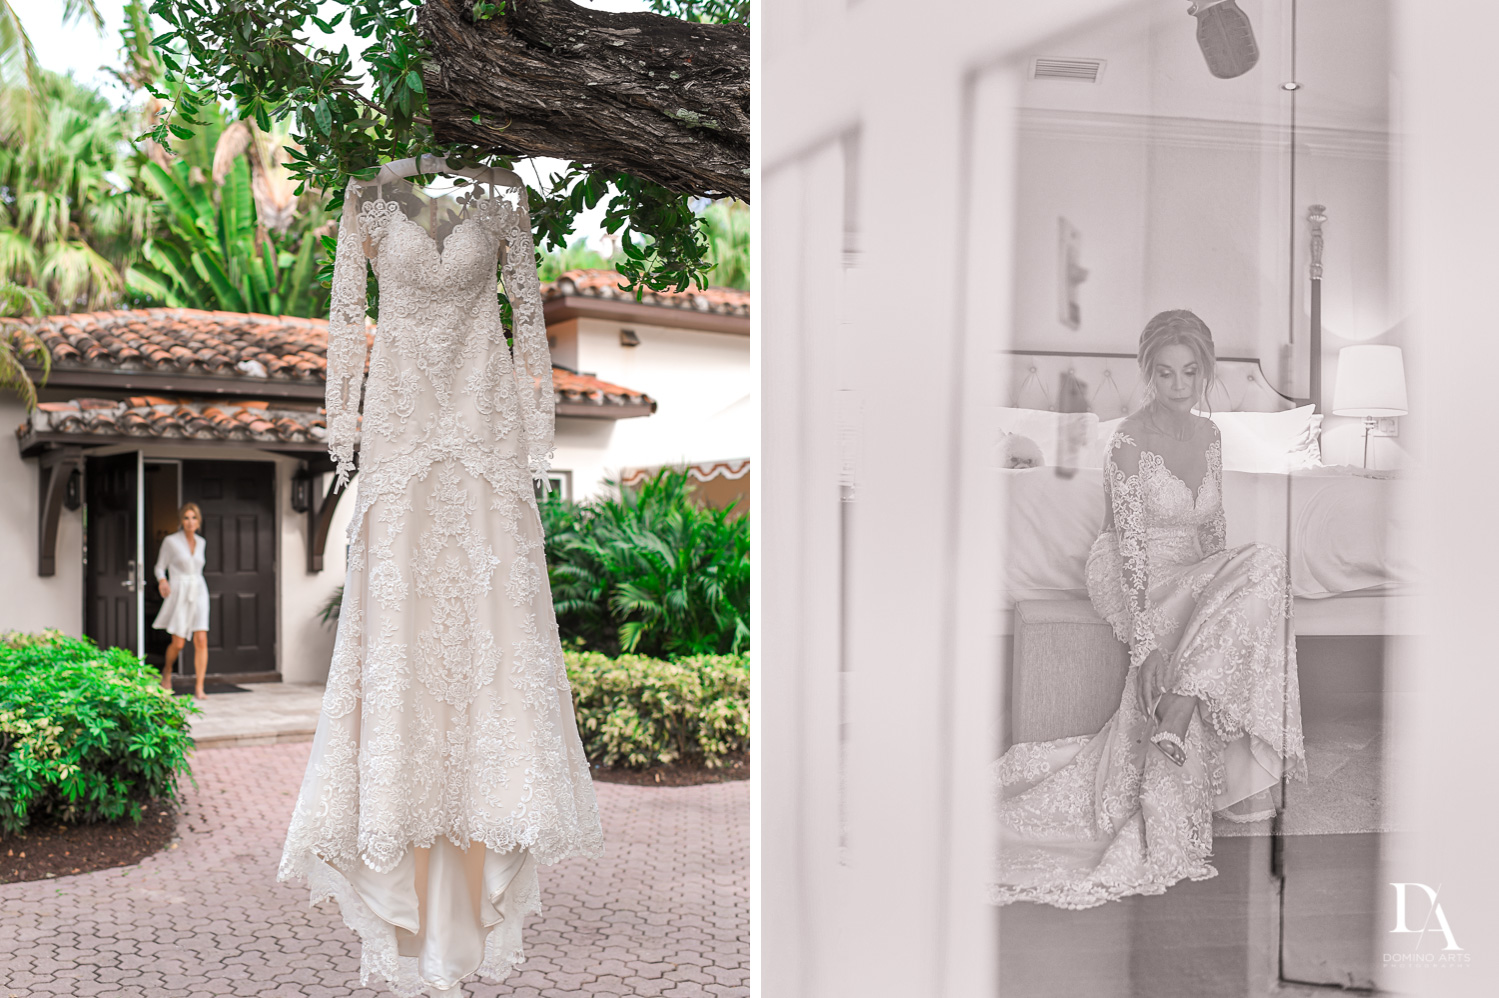 wedding dress at Classic & Elegant Wedding Photography at Fisher Island Miami by Domino Arts Photography